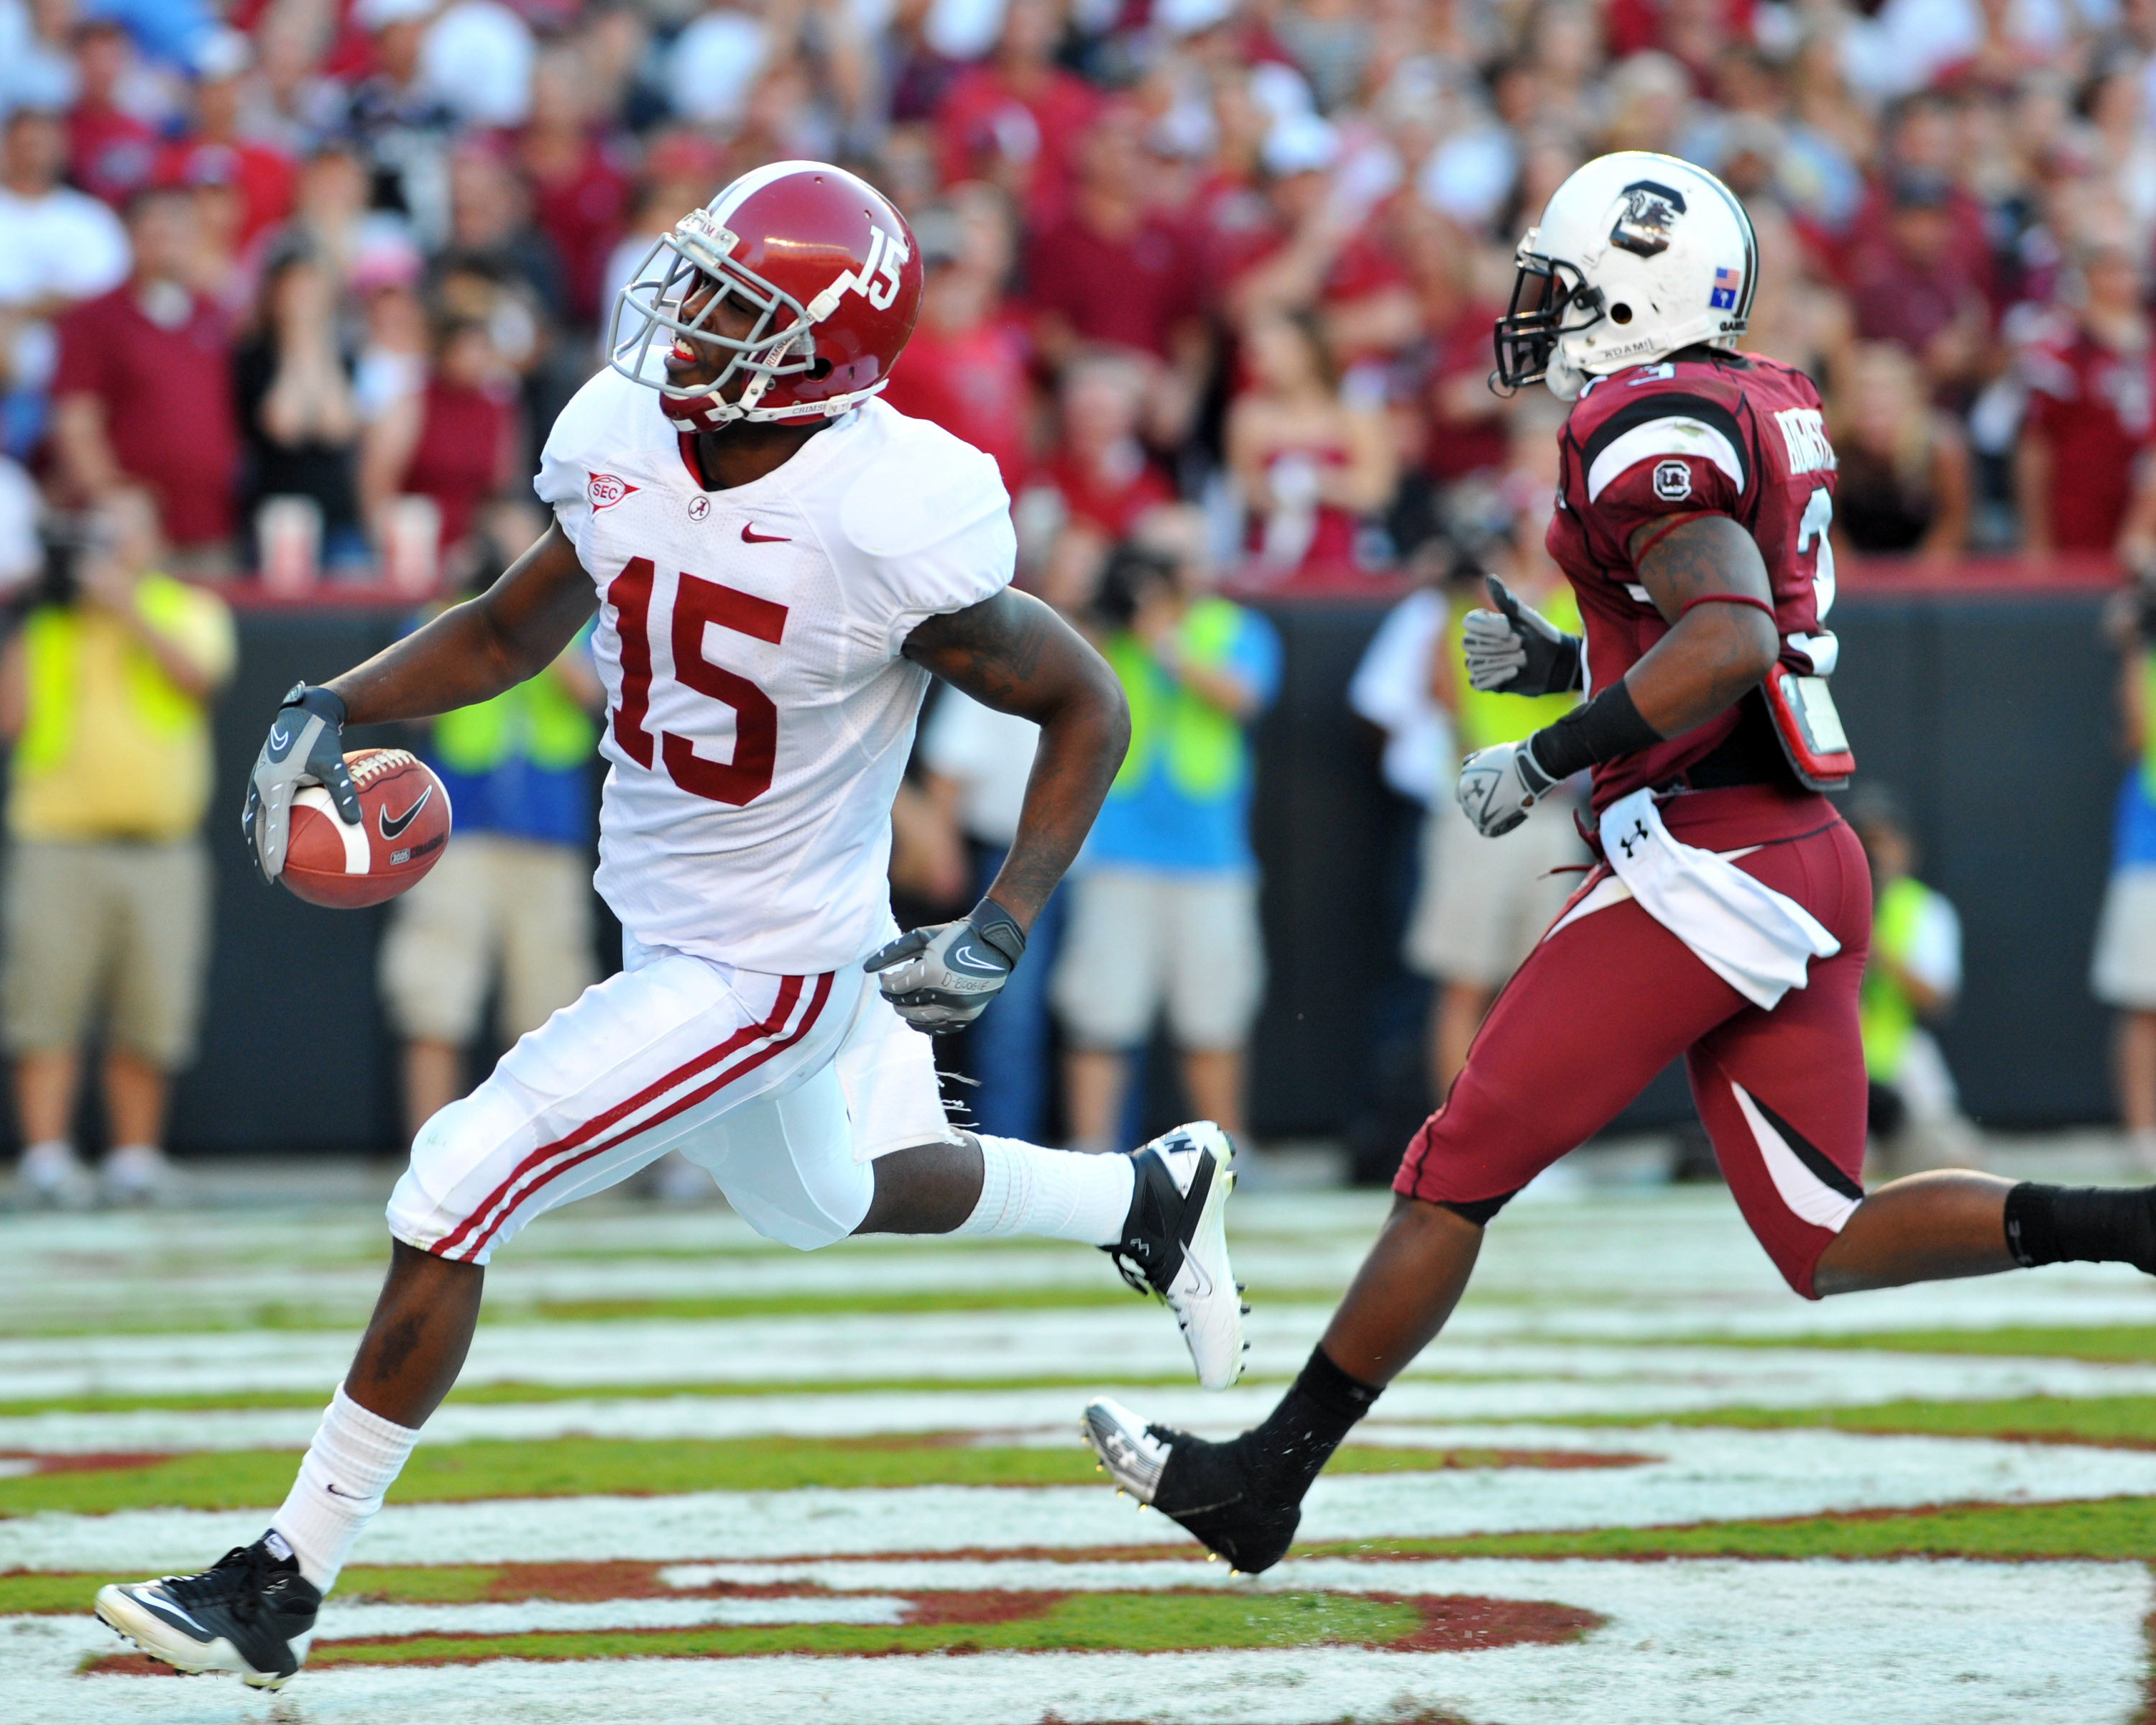 COLUMBIA, SC - OCTOBER 9: Wide receiver Darius Hanks #15 of the Alabama Crimson Tide scores with a 51 yard touchdown pass against the South Carolina Gamecocks October 9, 2010 at Williams-Brice Stadium in Columbia, South Carolina.  (Photo by Al Messerschmi